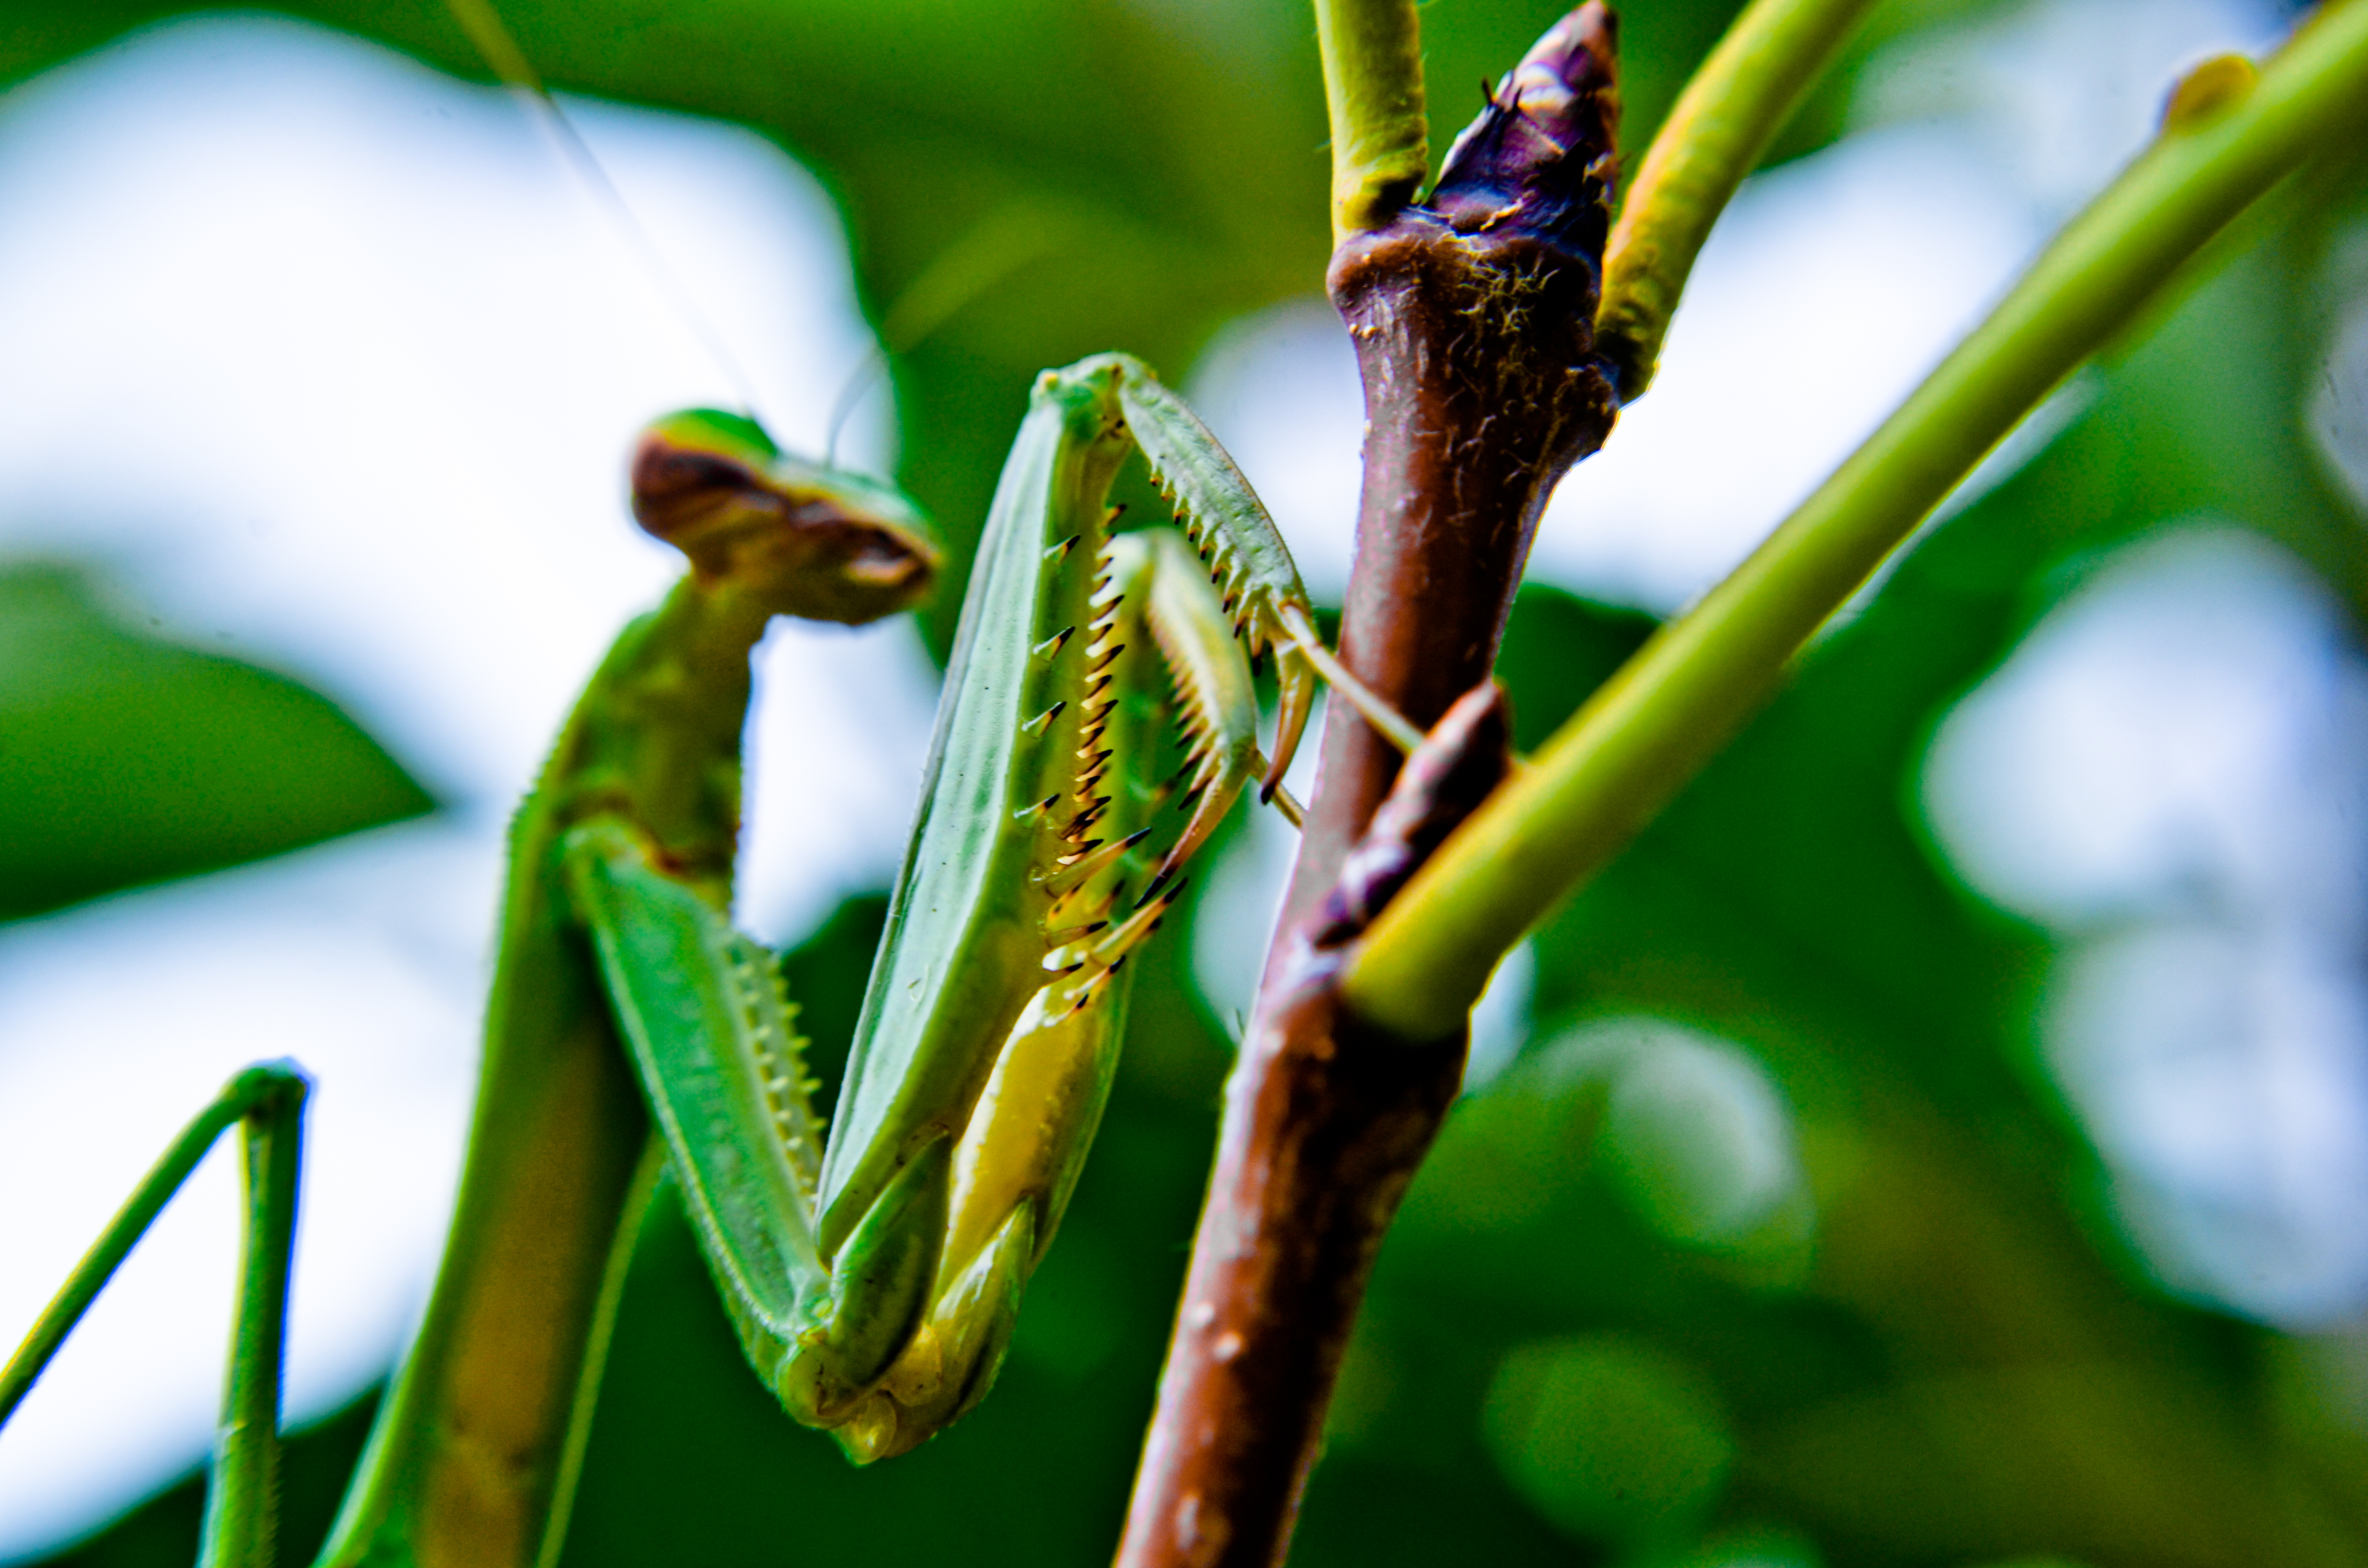 Mantis religiosa